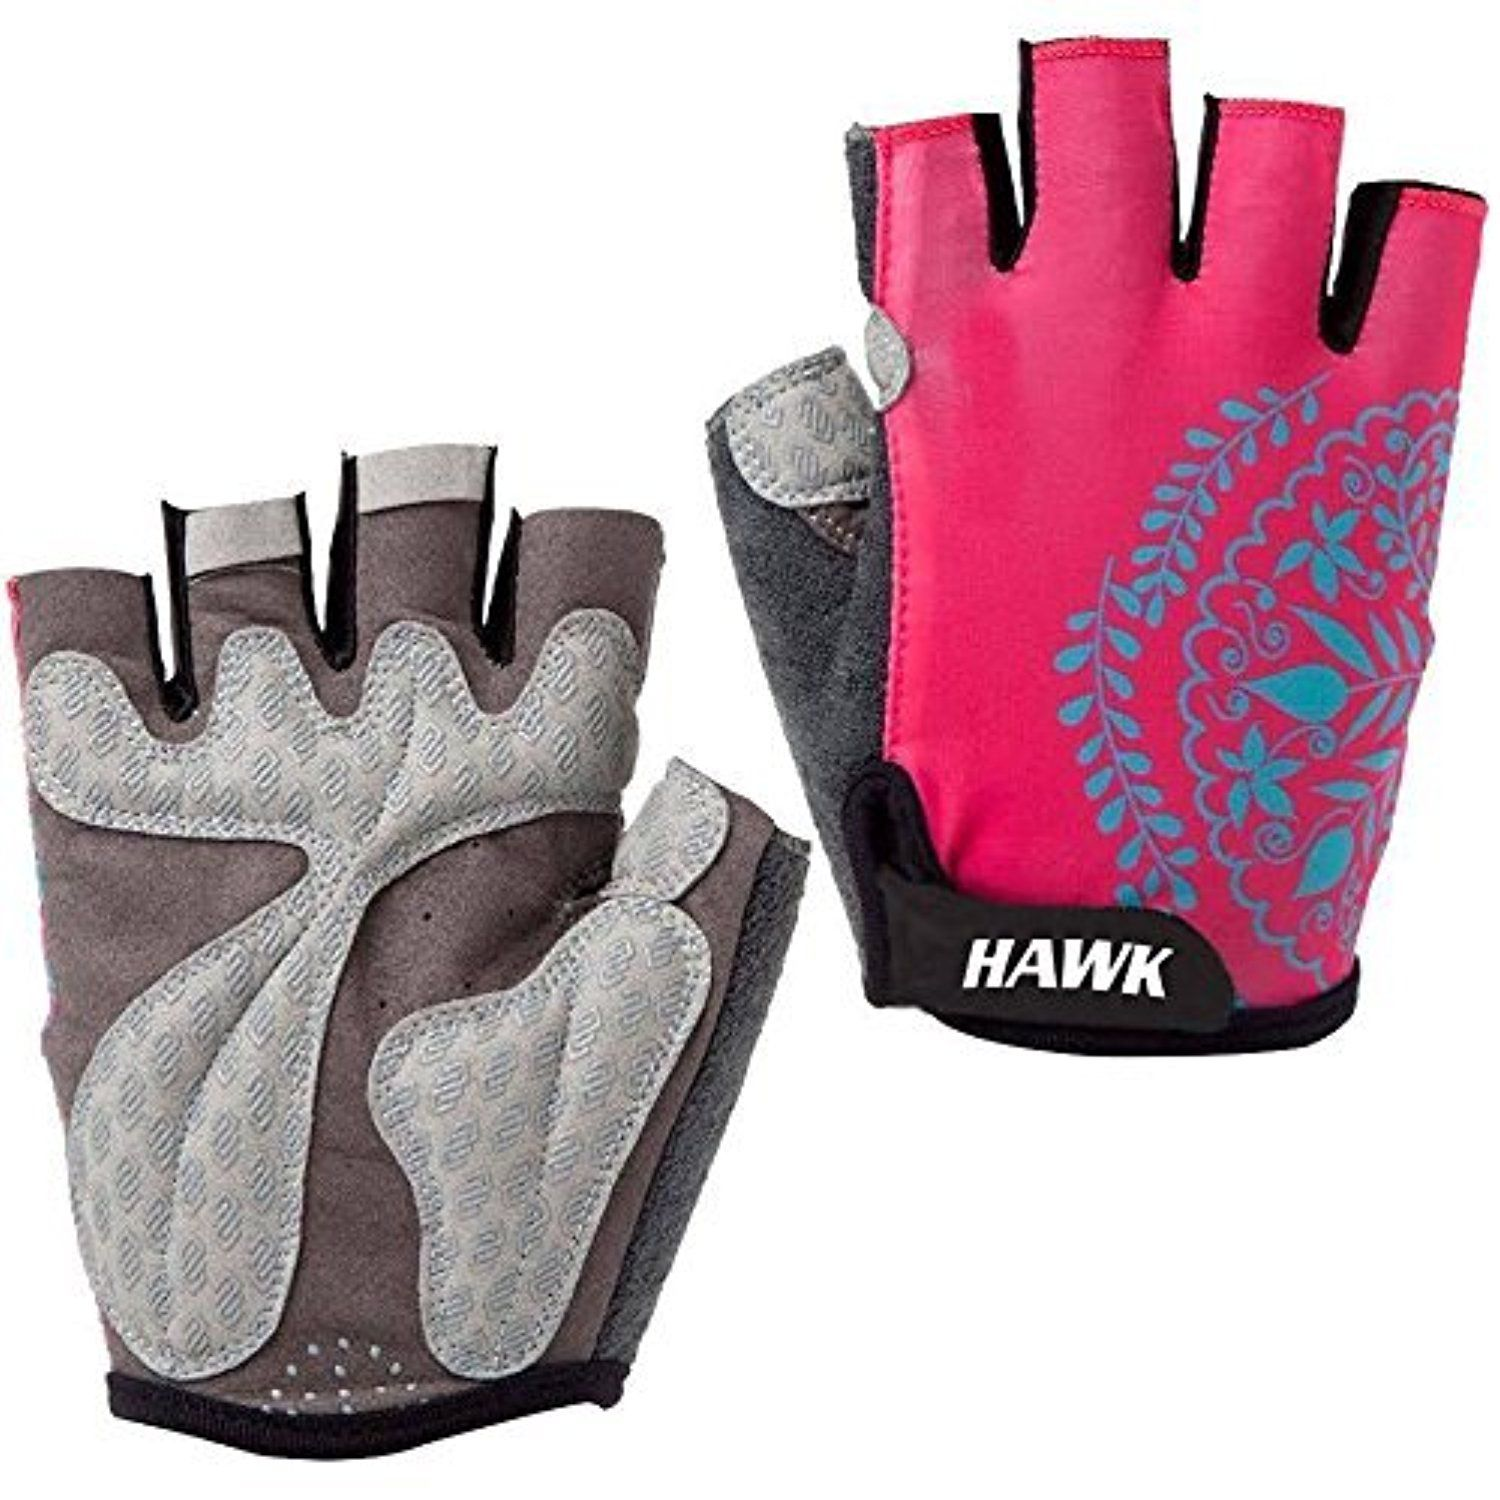 Ladies leather cycling gloves - Hawk Ladies Pink Gym Leather Weight Lifting Gloves Cycling Gloves Cross Training Bodybuilding Fitness Workout 1